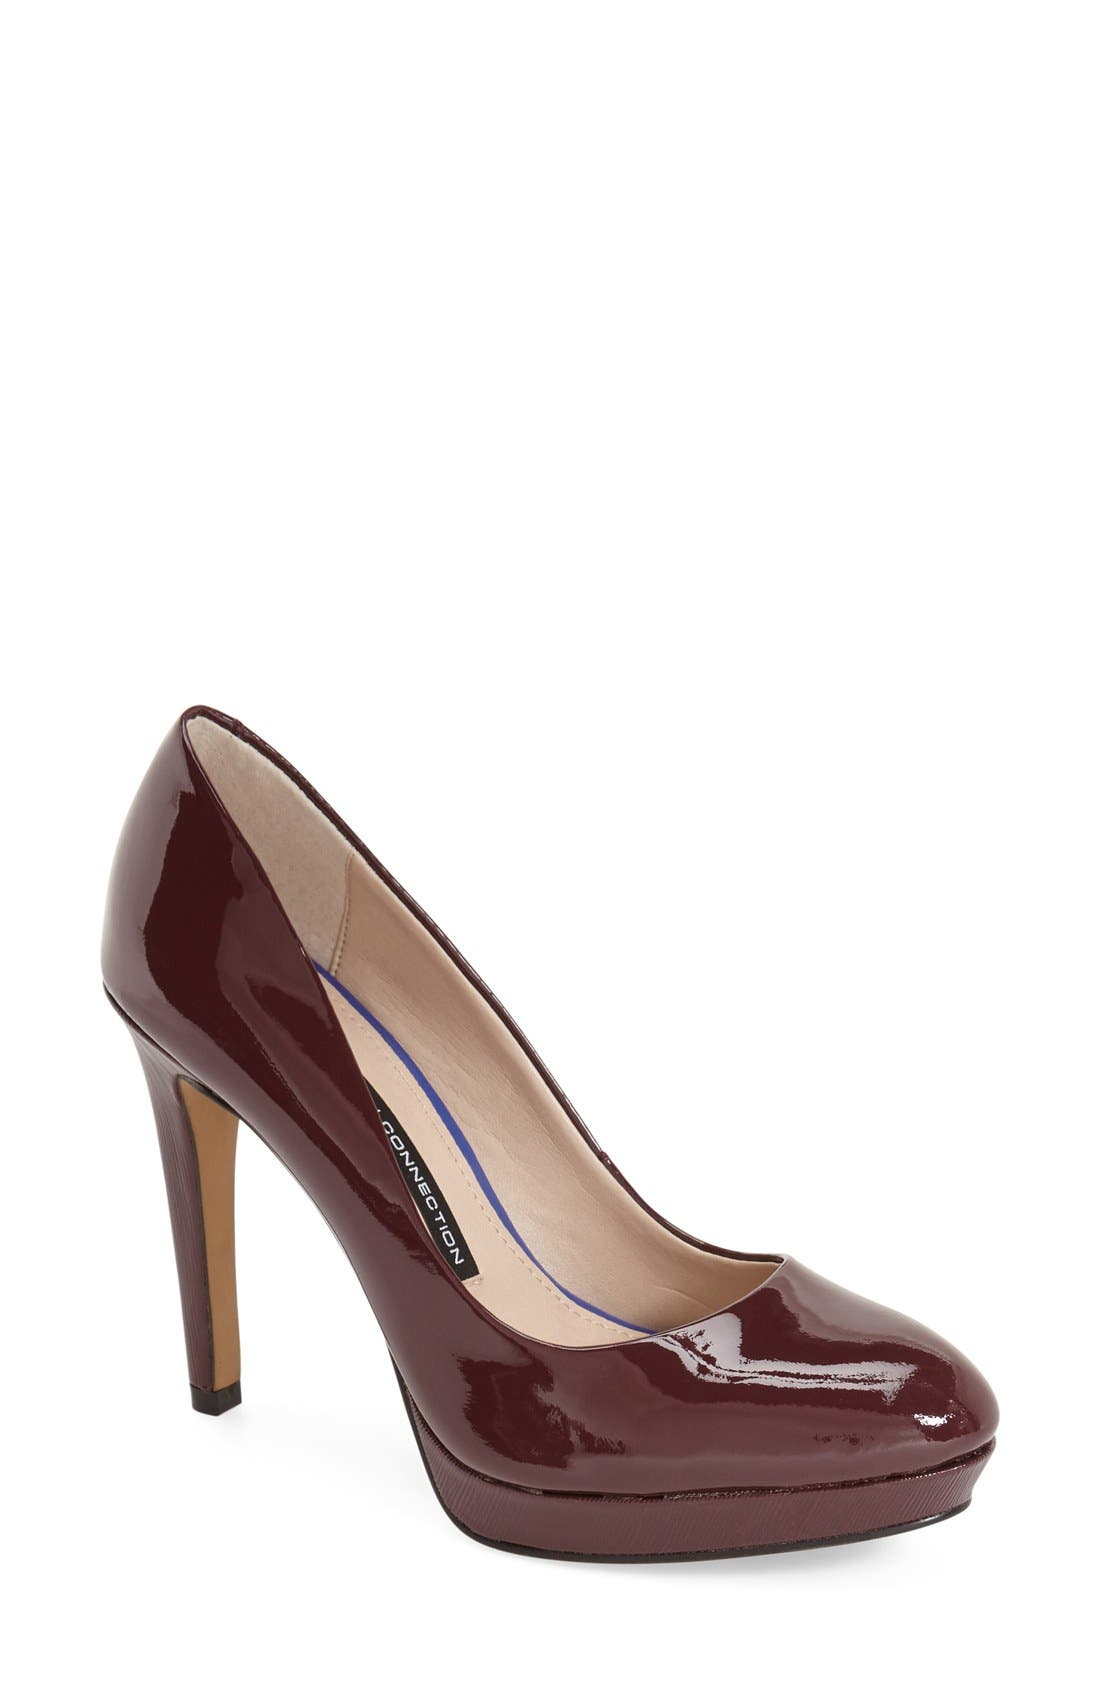 Alternate Image 1 Selected - French Connection 'Robbie' Round Toe Platform Pump (Women)